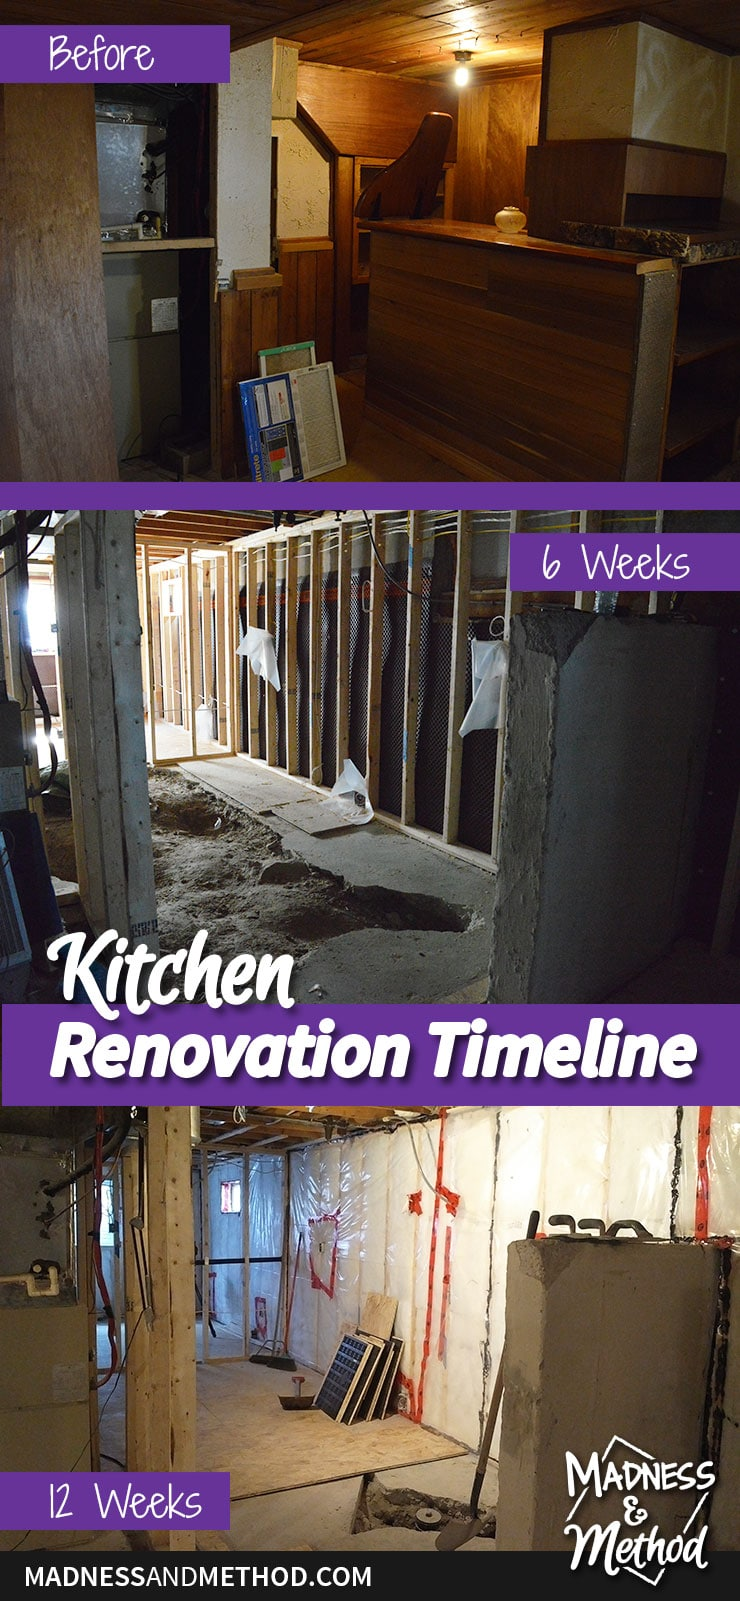 basement kitchen renovation timeline graphic